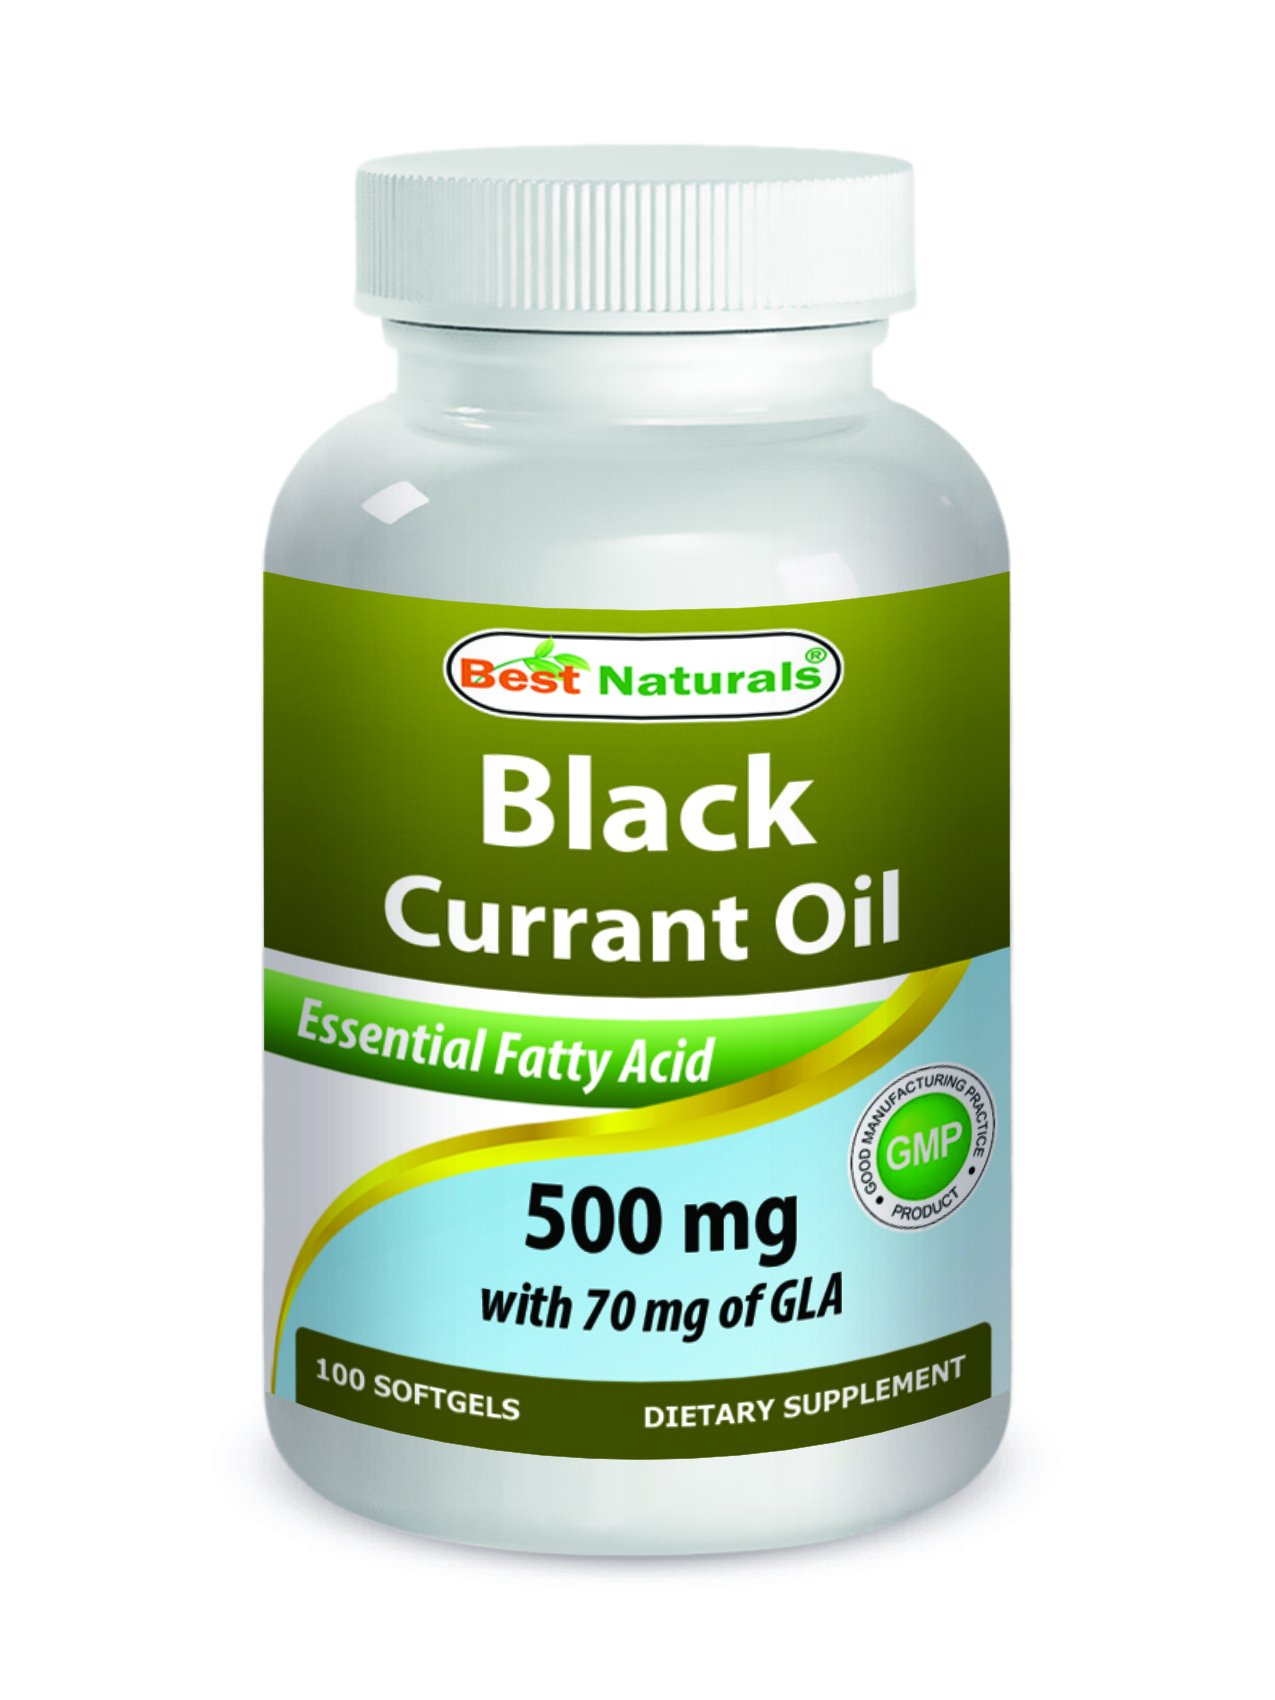 Best Naturals Black Currant Oil 500 Mg with 70 Mg of GLA 100 Softgels